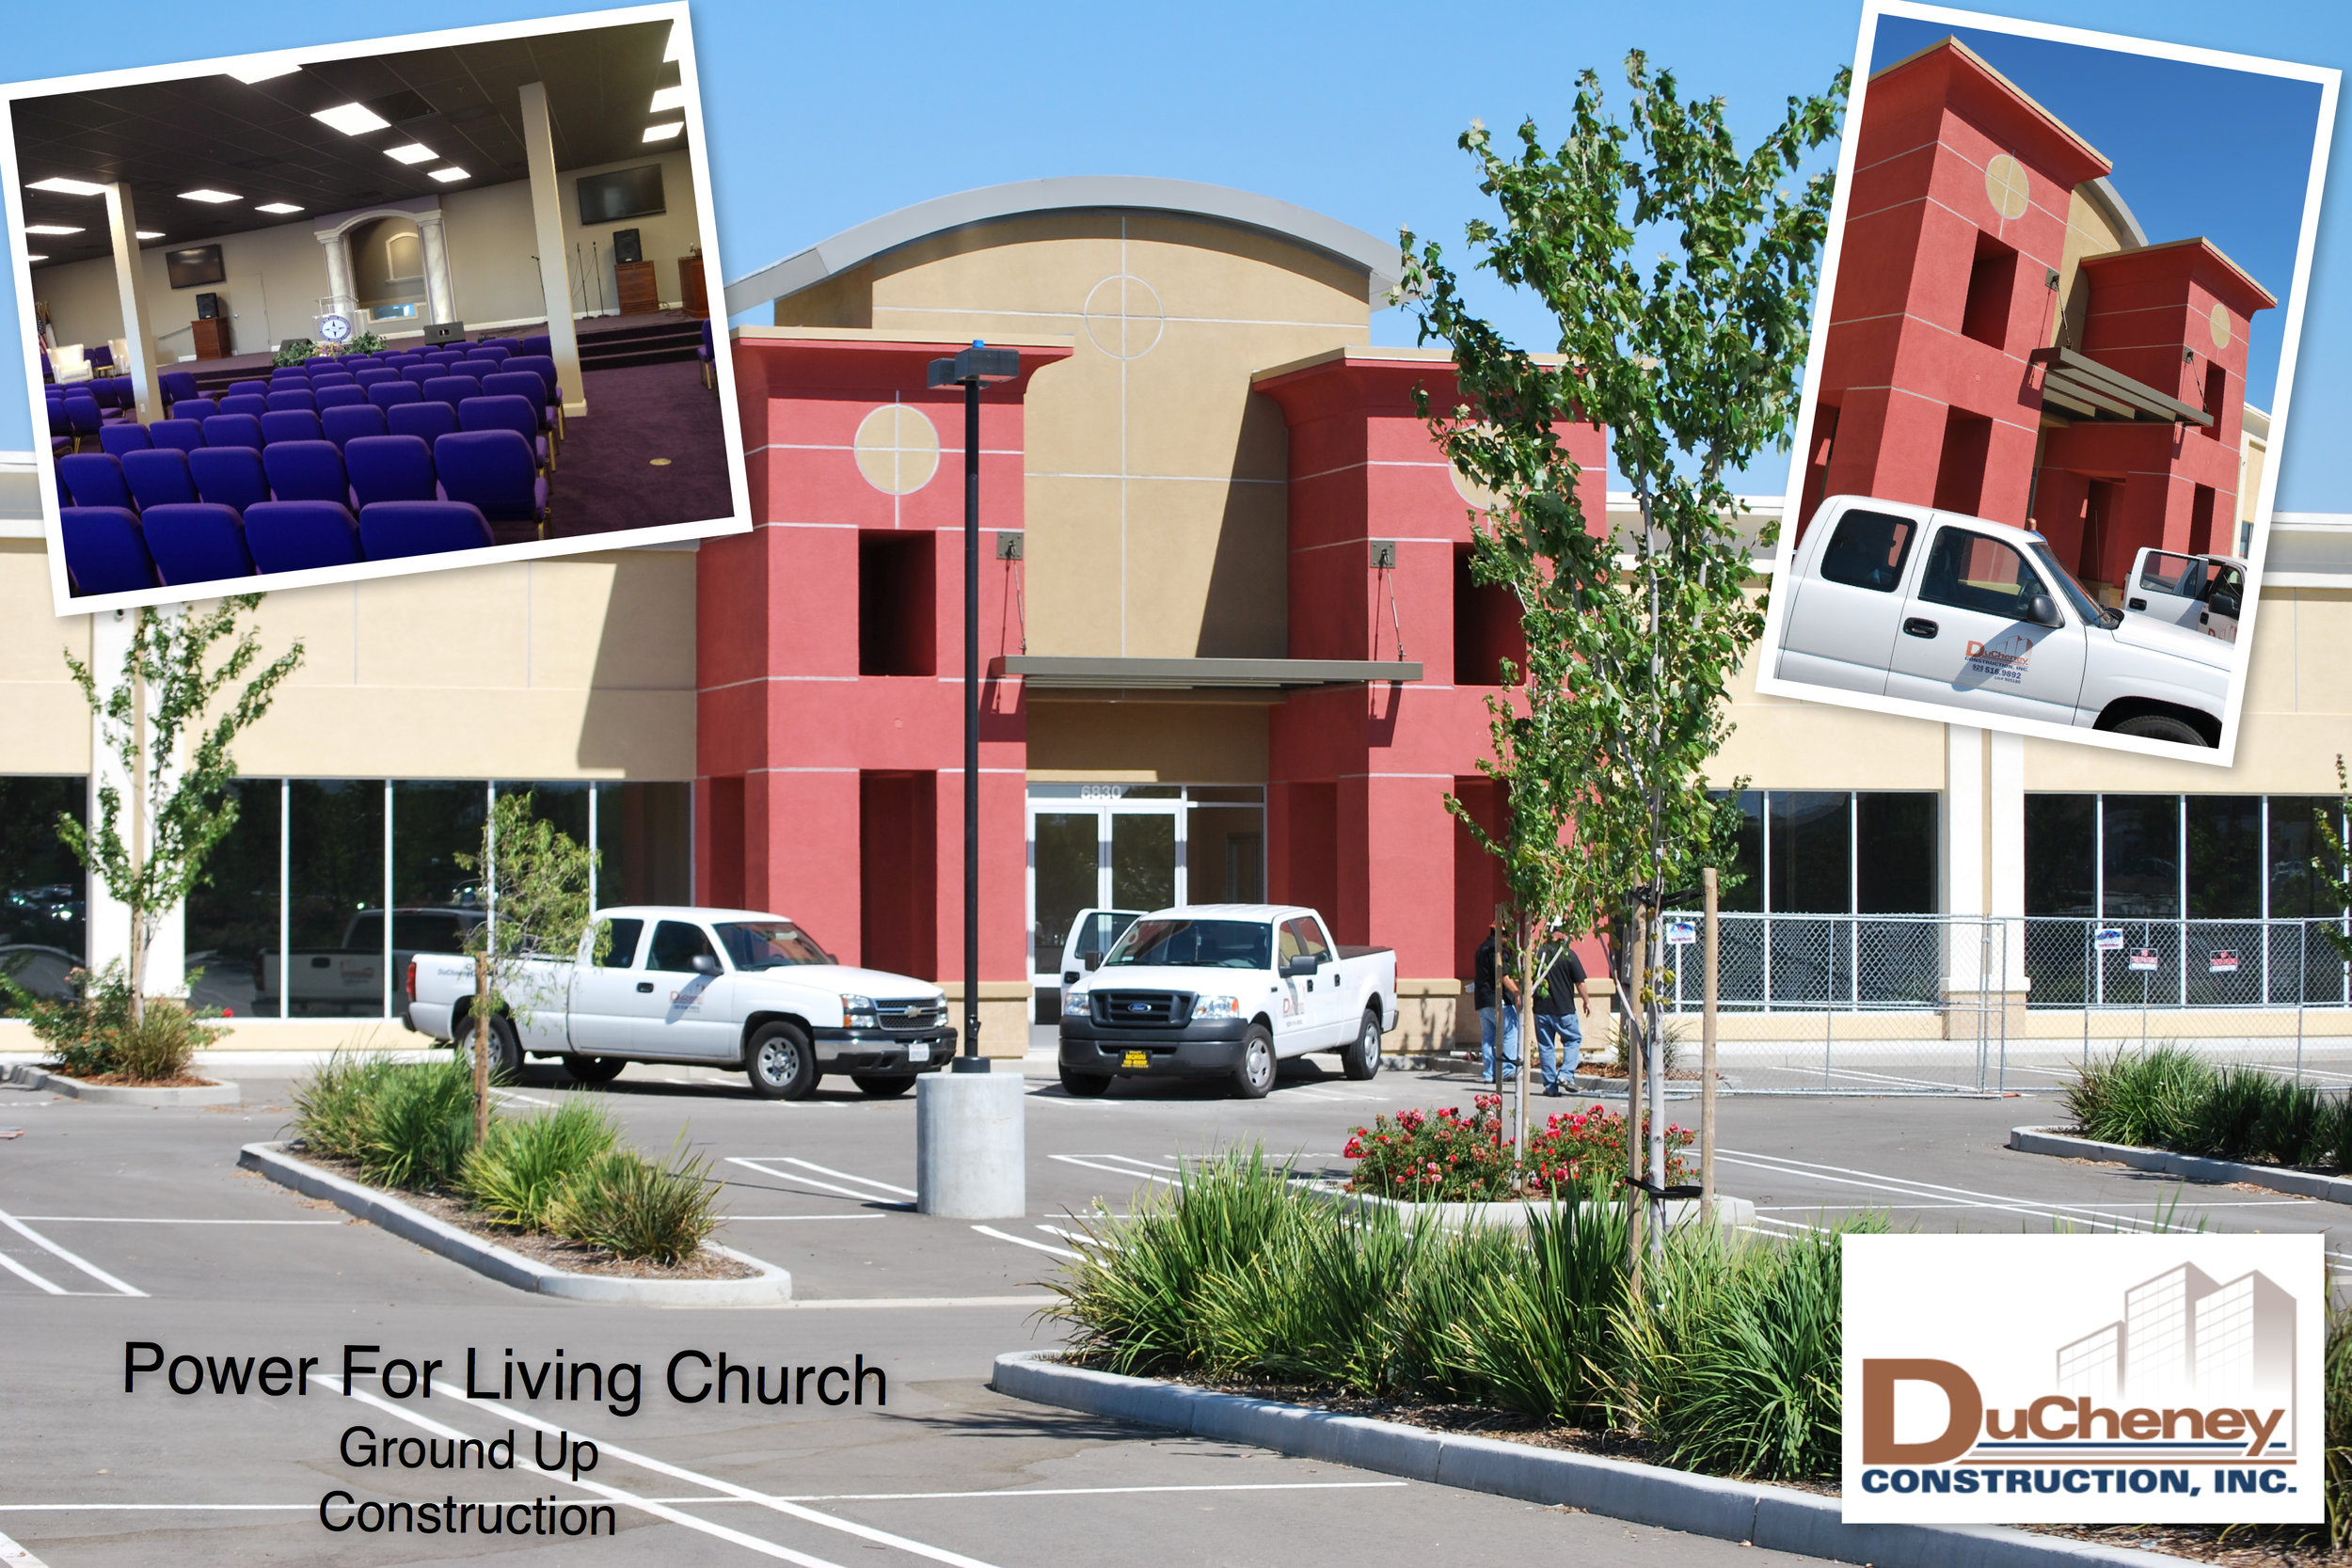 Power For Living Church -